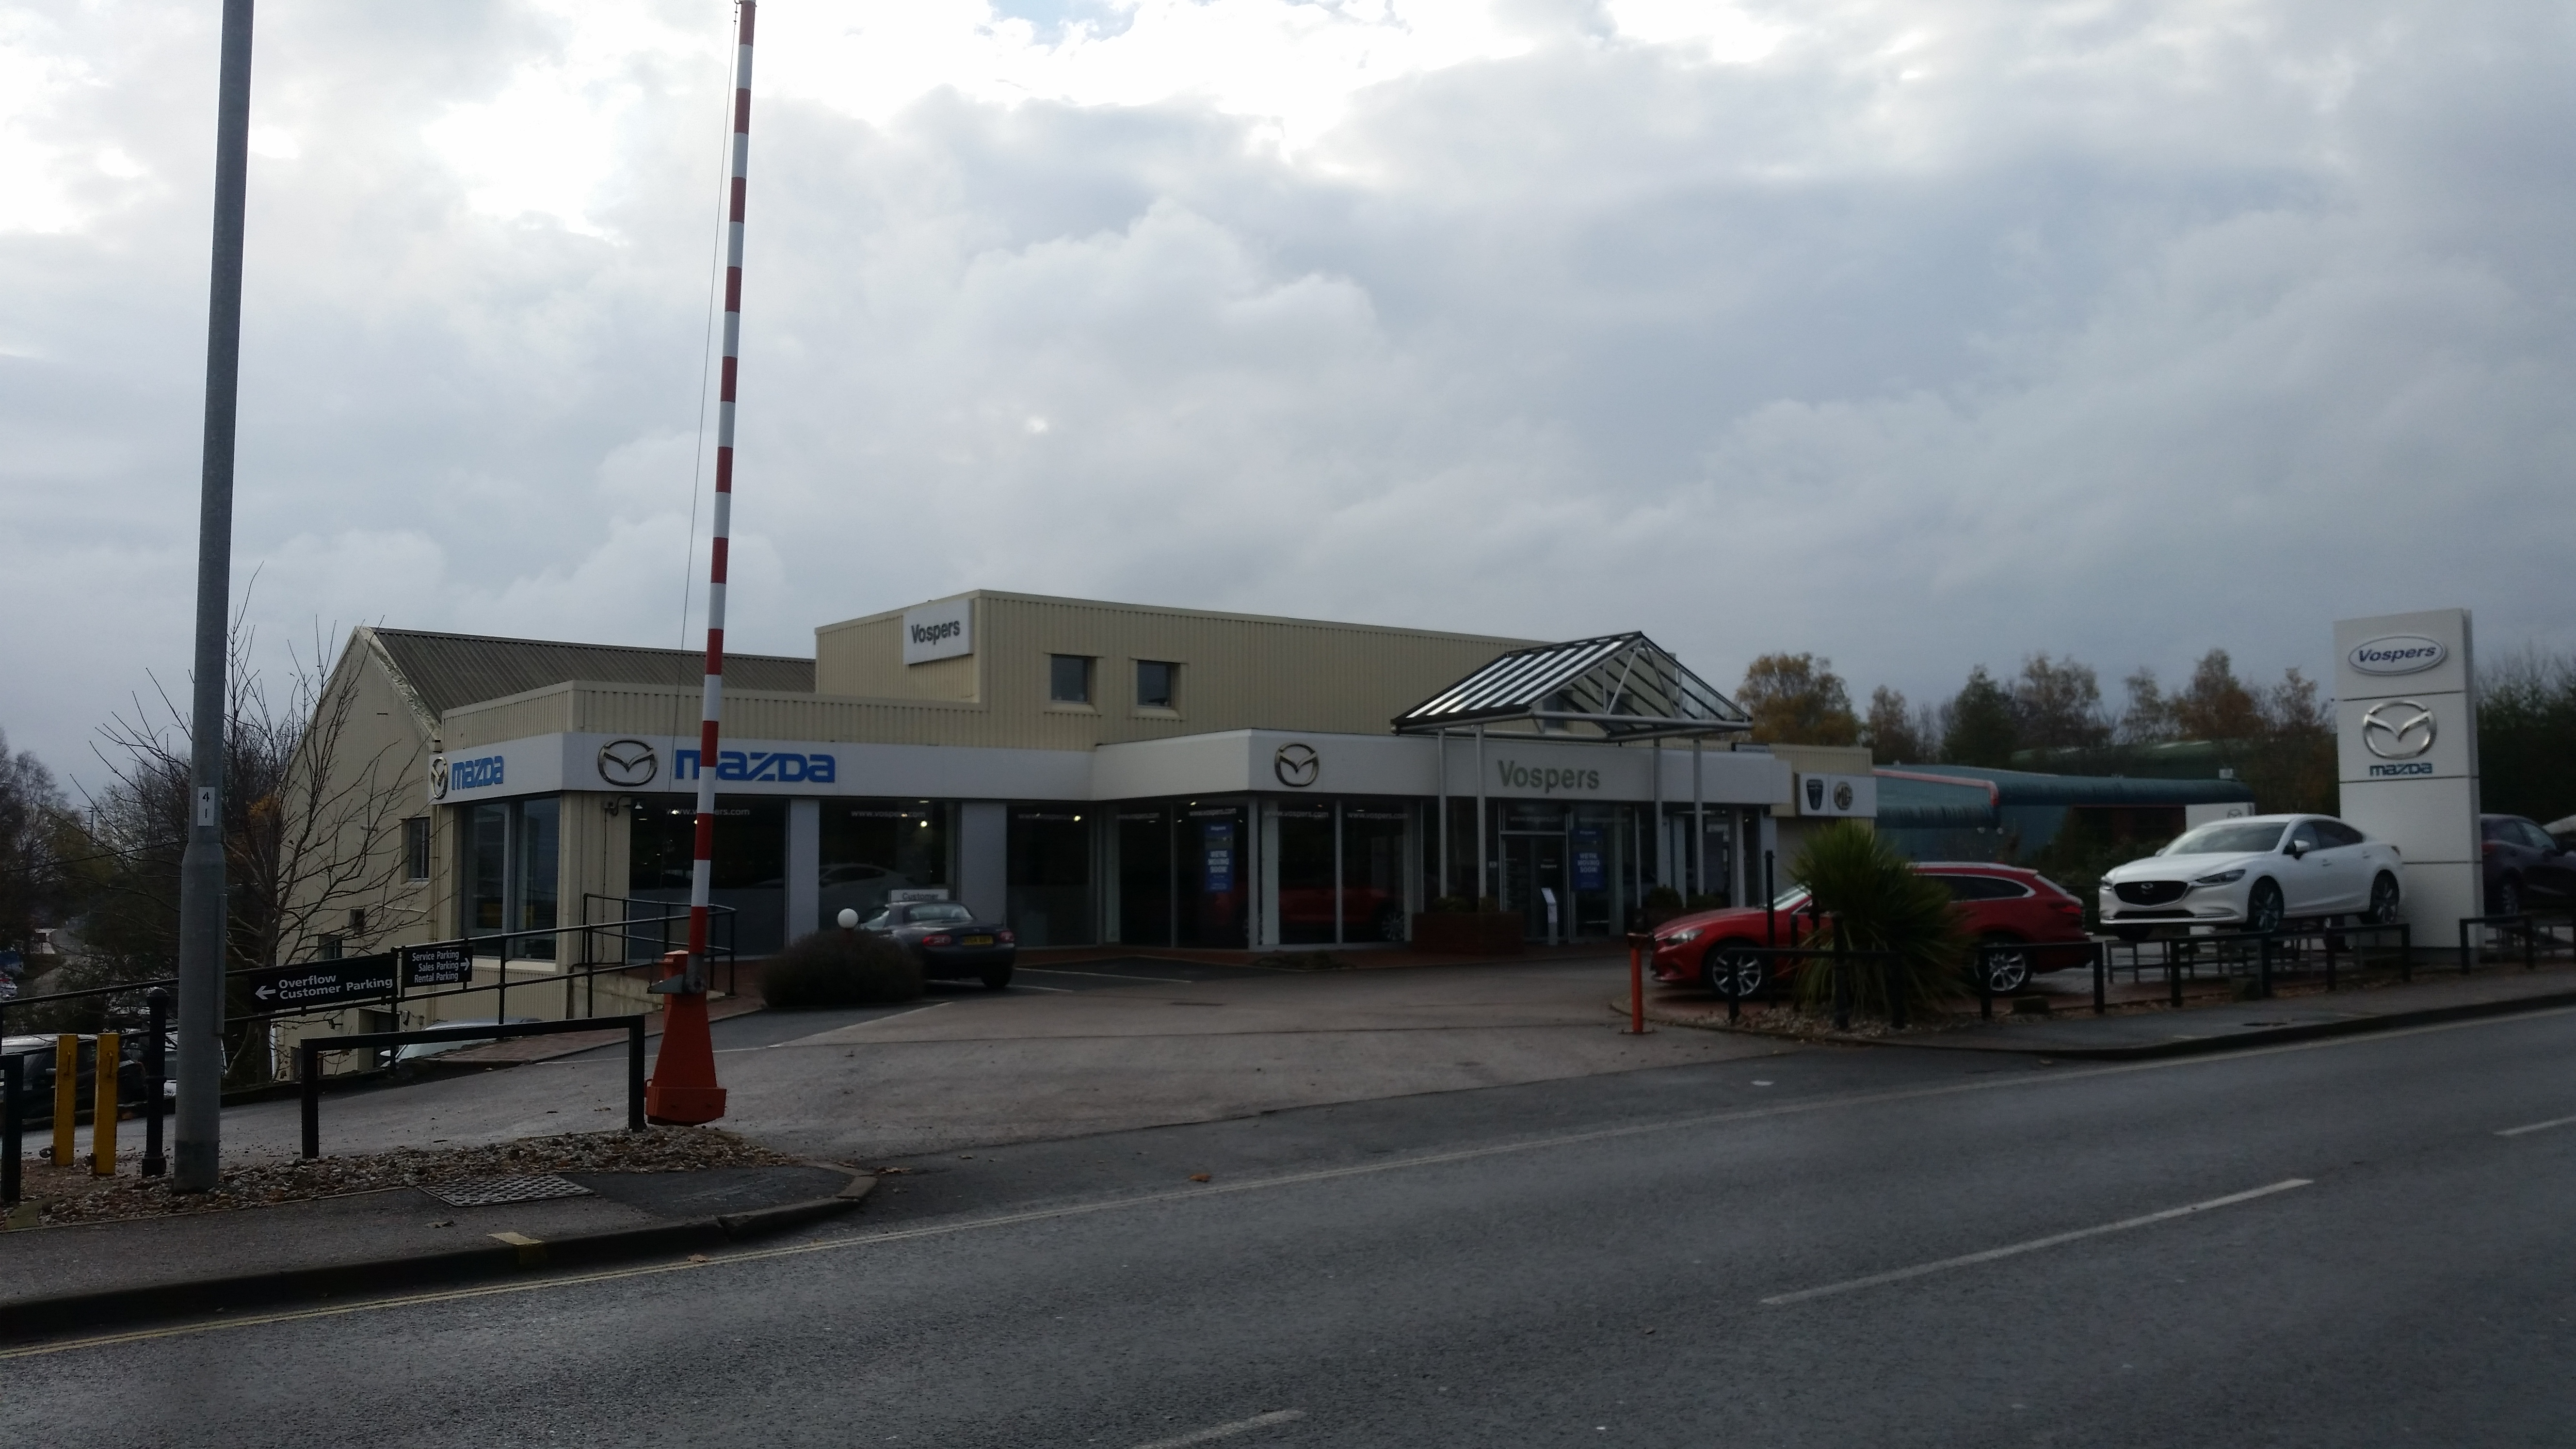 Honiton Road (Vospers), EXETER